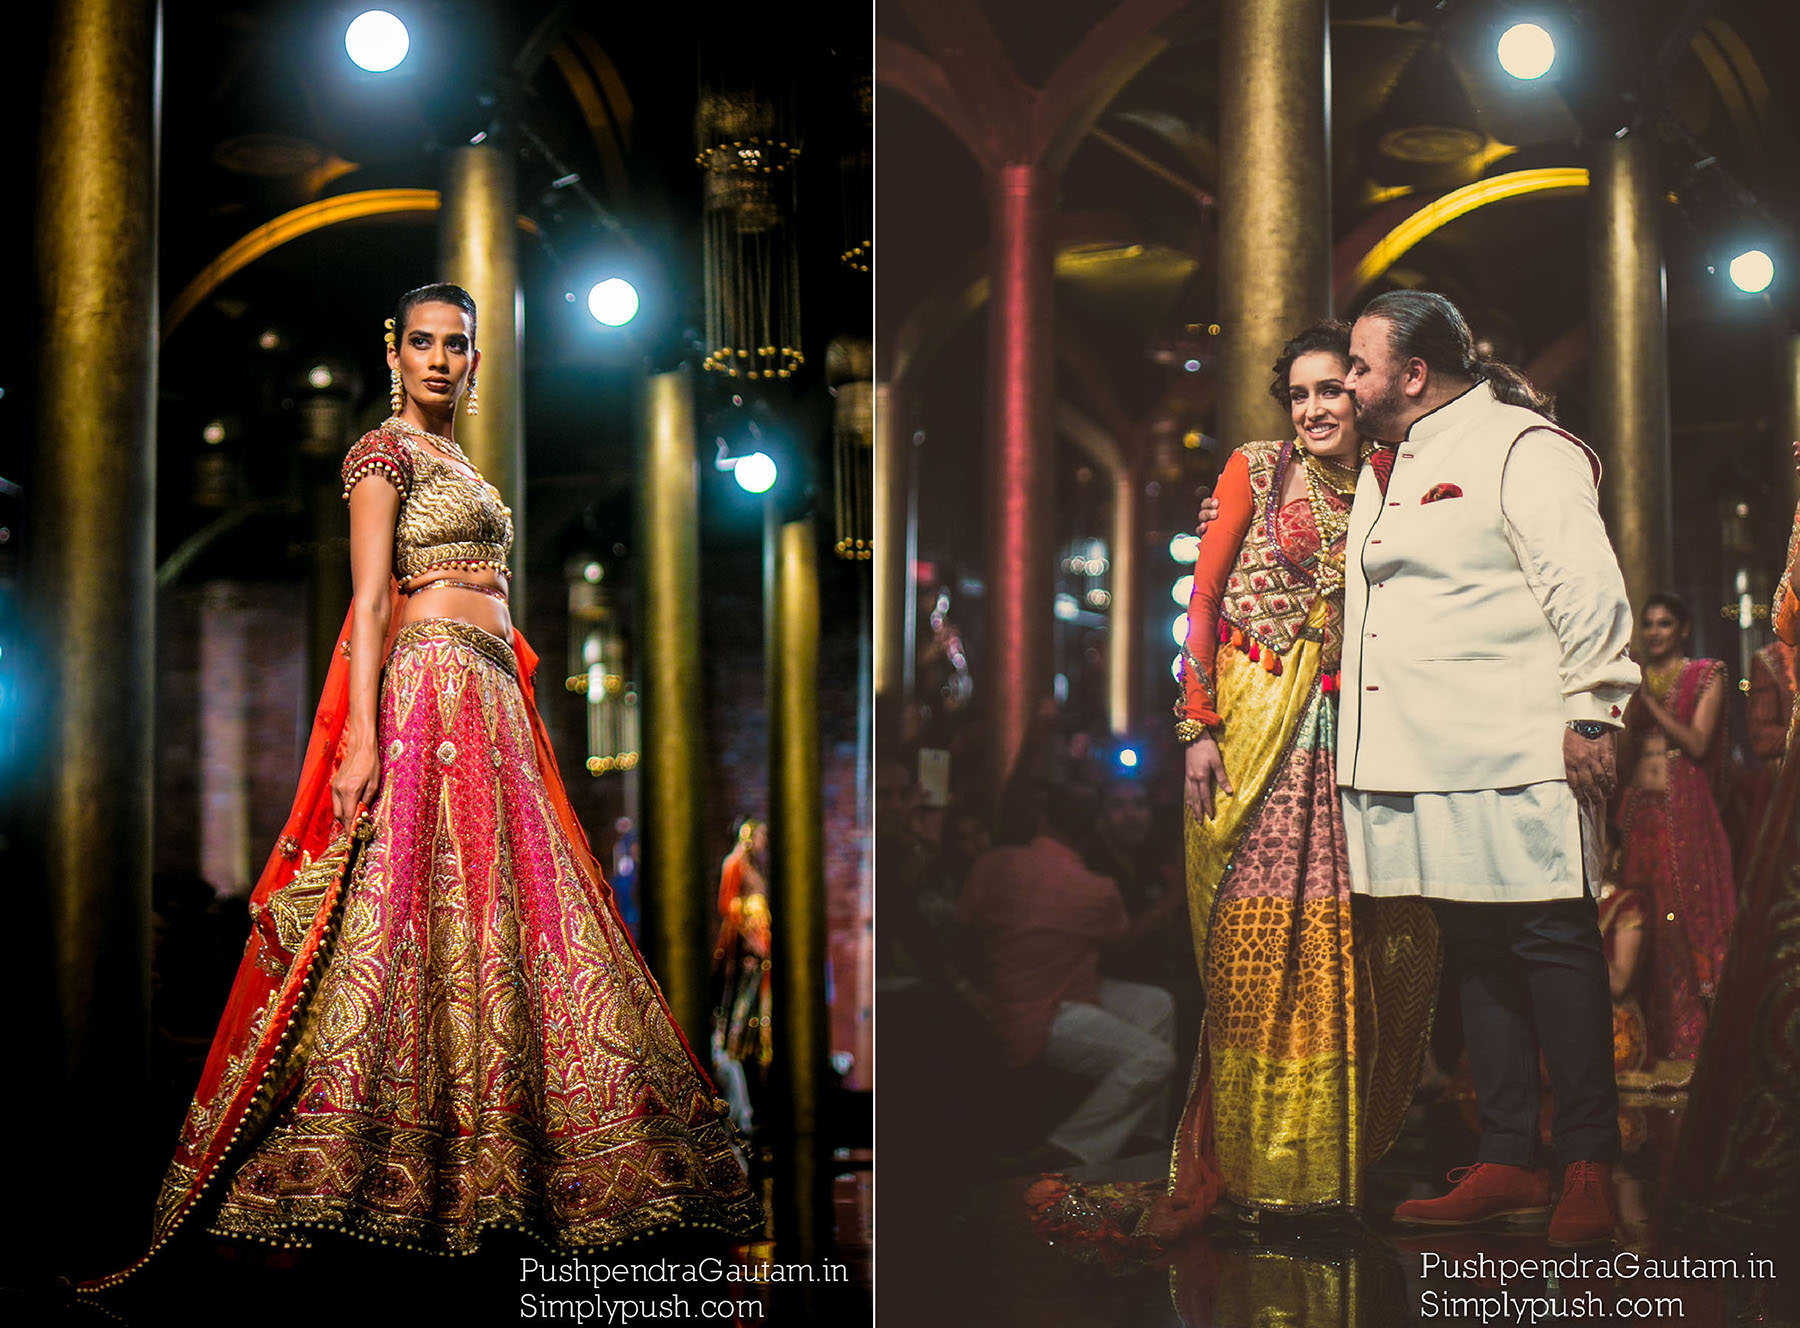 JJ-valaya-india-bridal-fashion-week-collection-pics-by-best-india-delhi-event-photographer-pushpendra-gautam Bridal collection, fashion week pics, JJ Valaya india bridal fashion week,JJ-valaya-collection